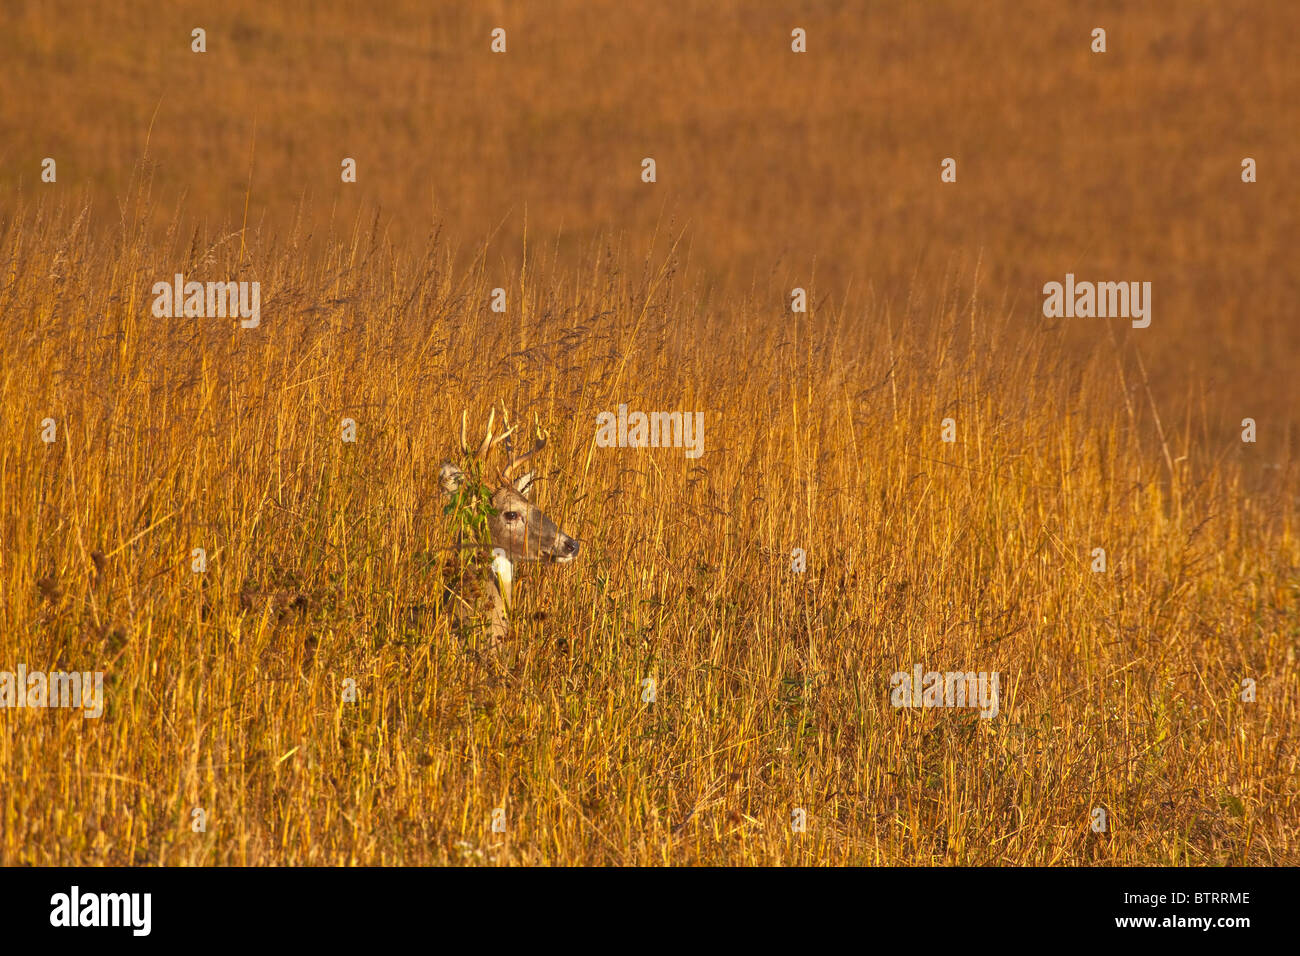 Venado, Buck, de pie en medio de la tallgrass prairie a Neal Smith National Wildlife Refuge, Prairie City, Iowa, Imagen De Stock